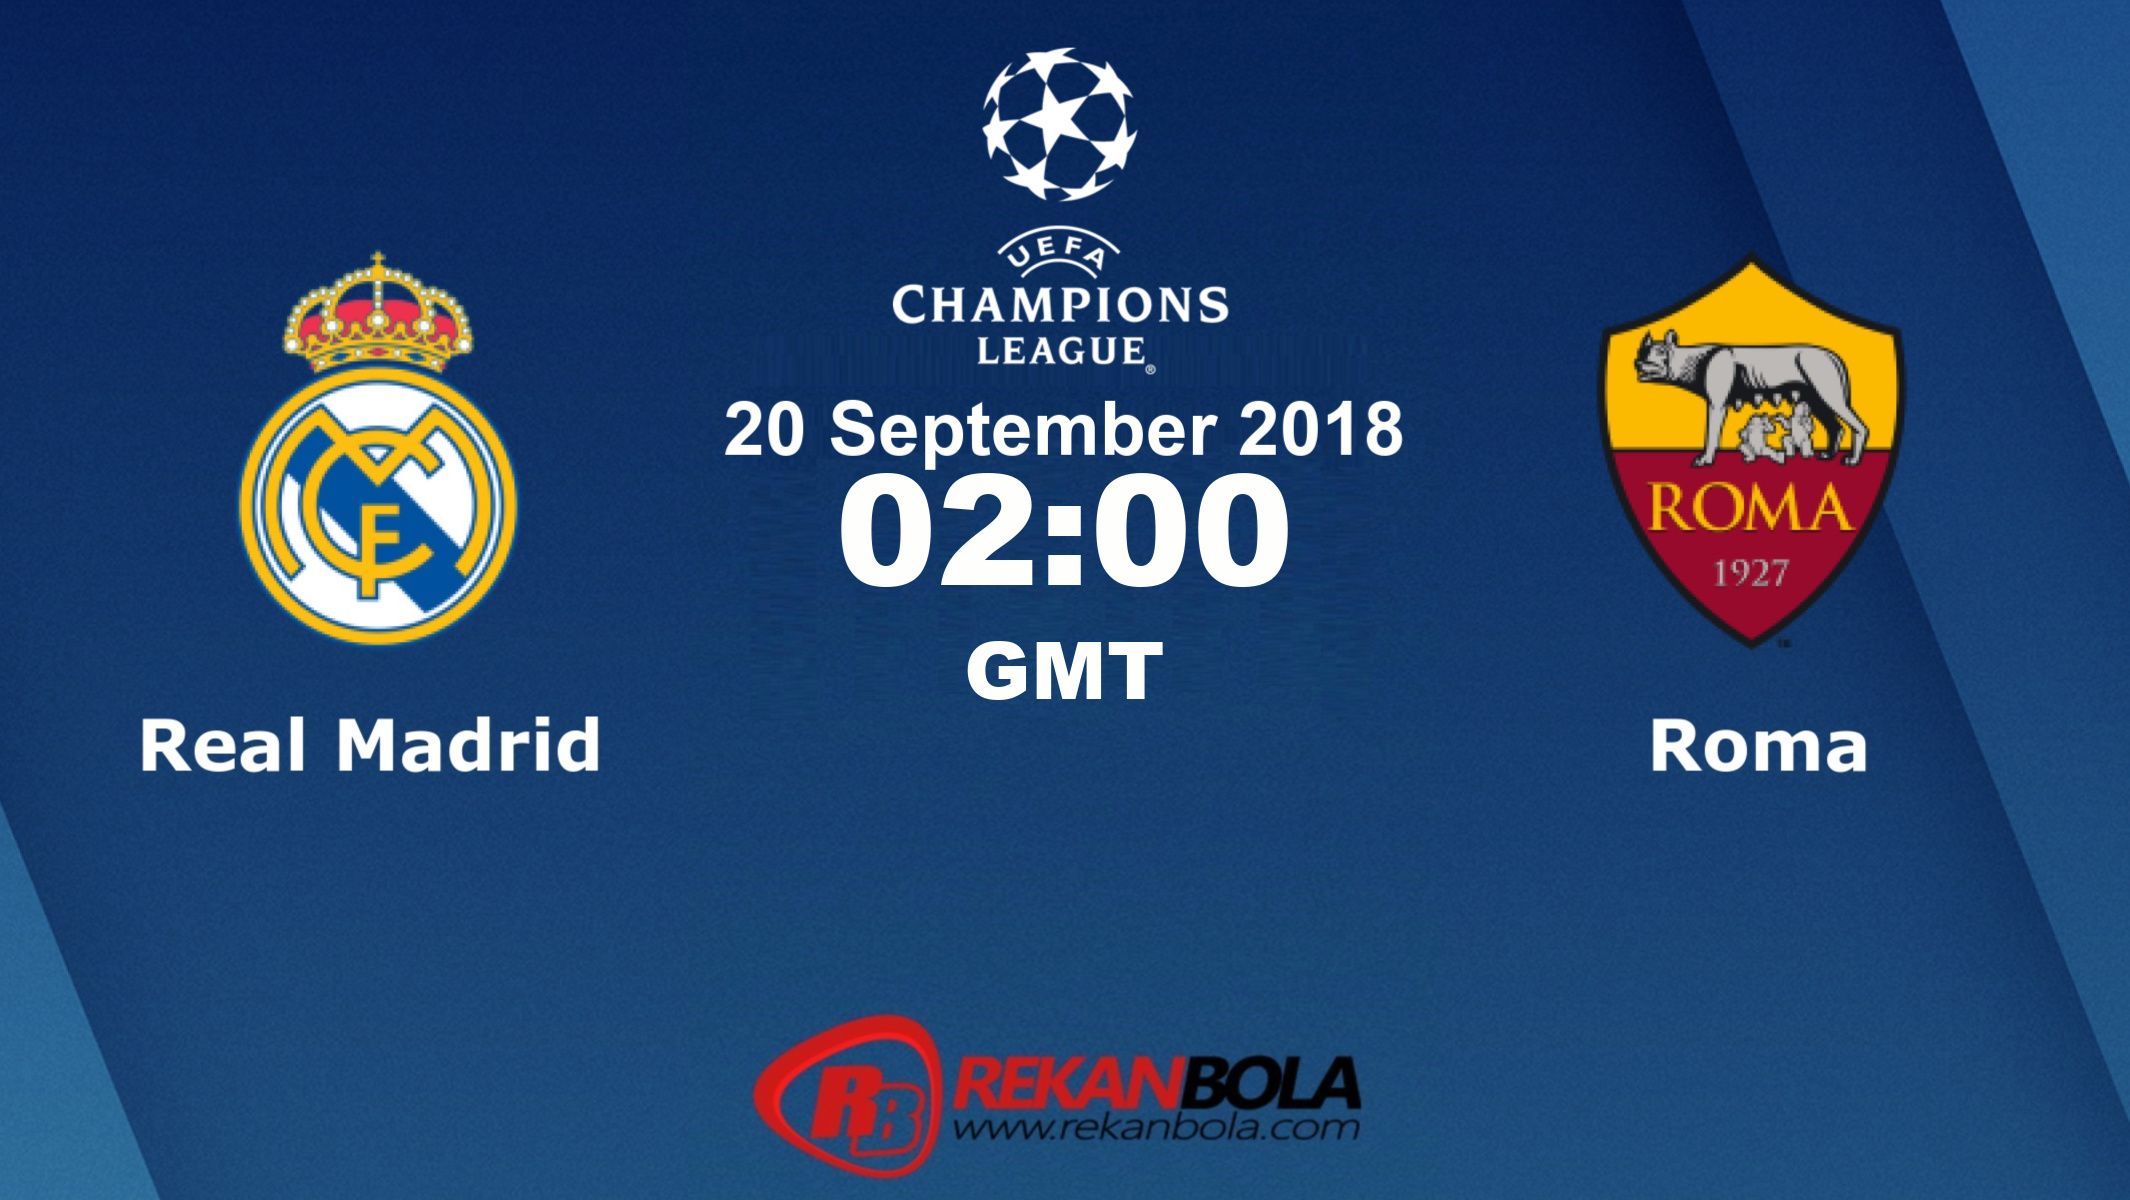 Nonton Siaran Live Streaming Madrid Vs Roma 20 September 2018